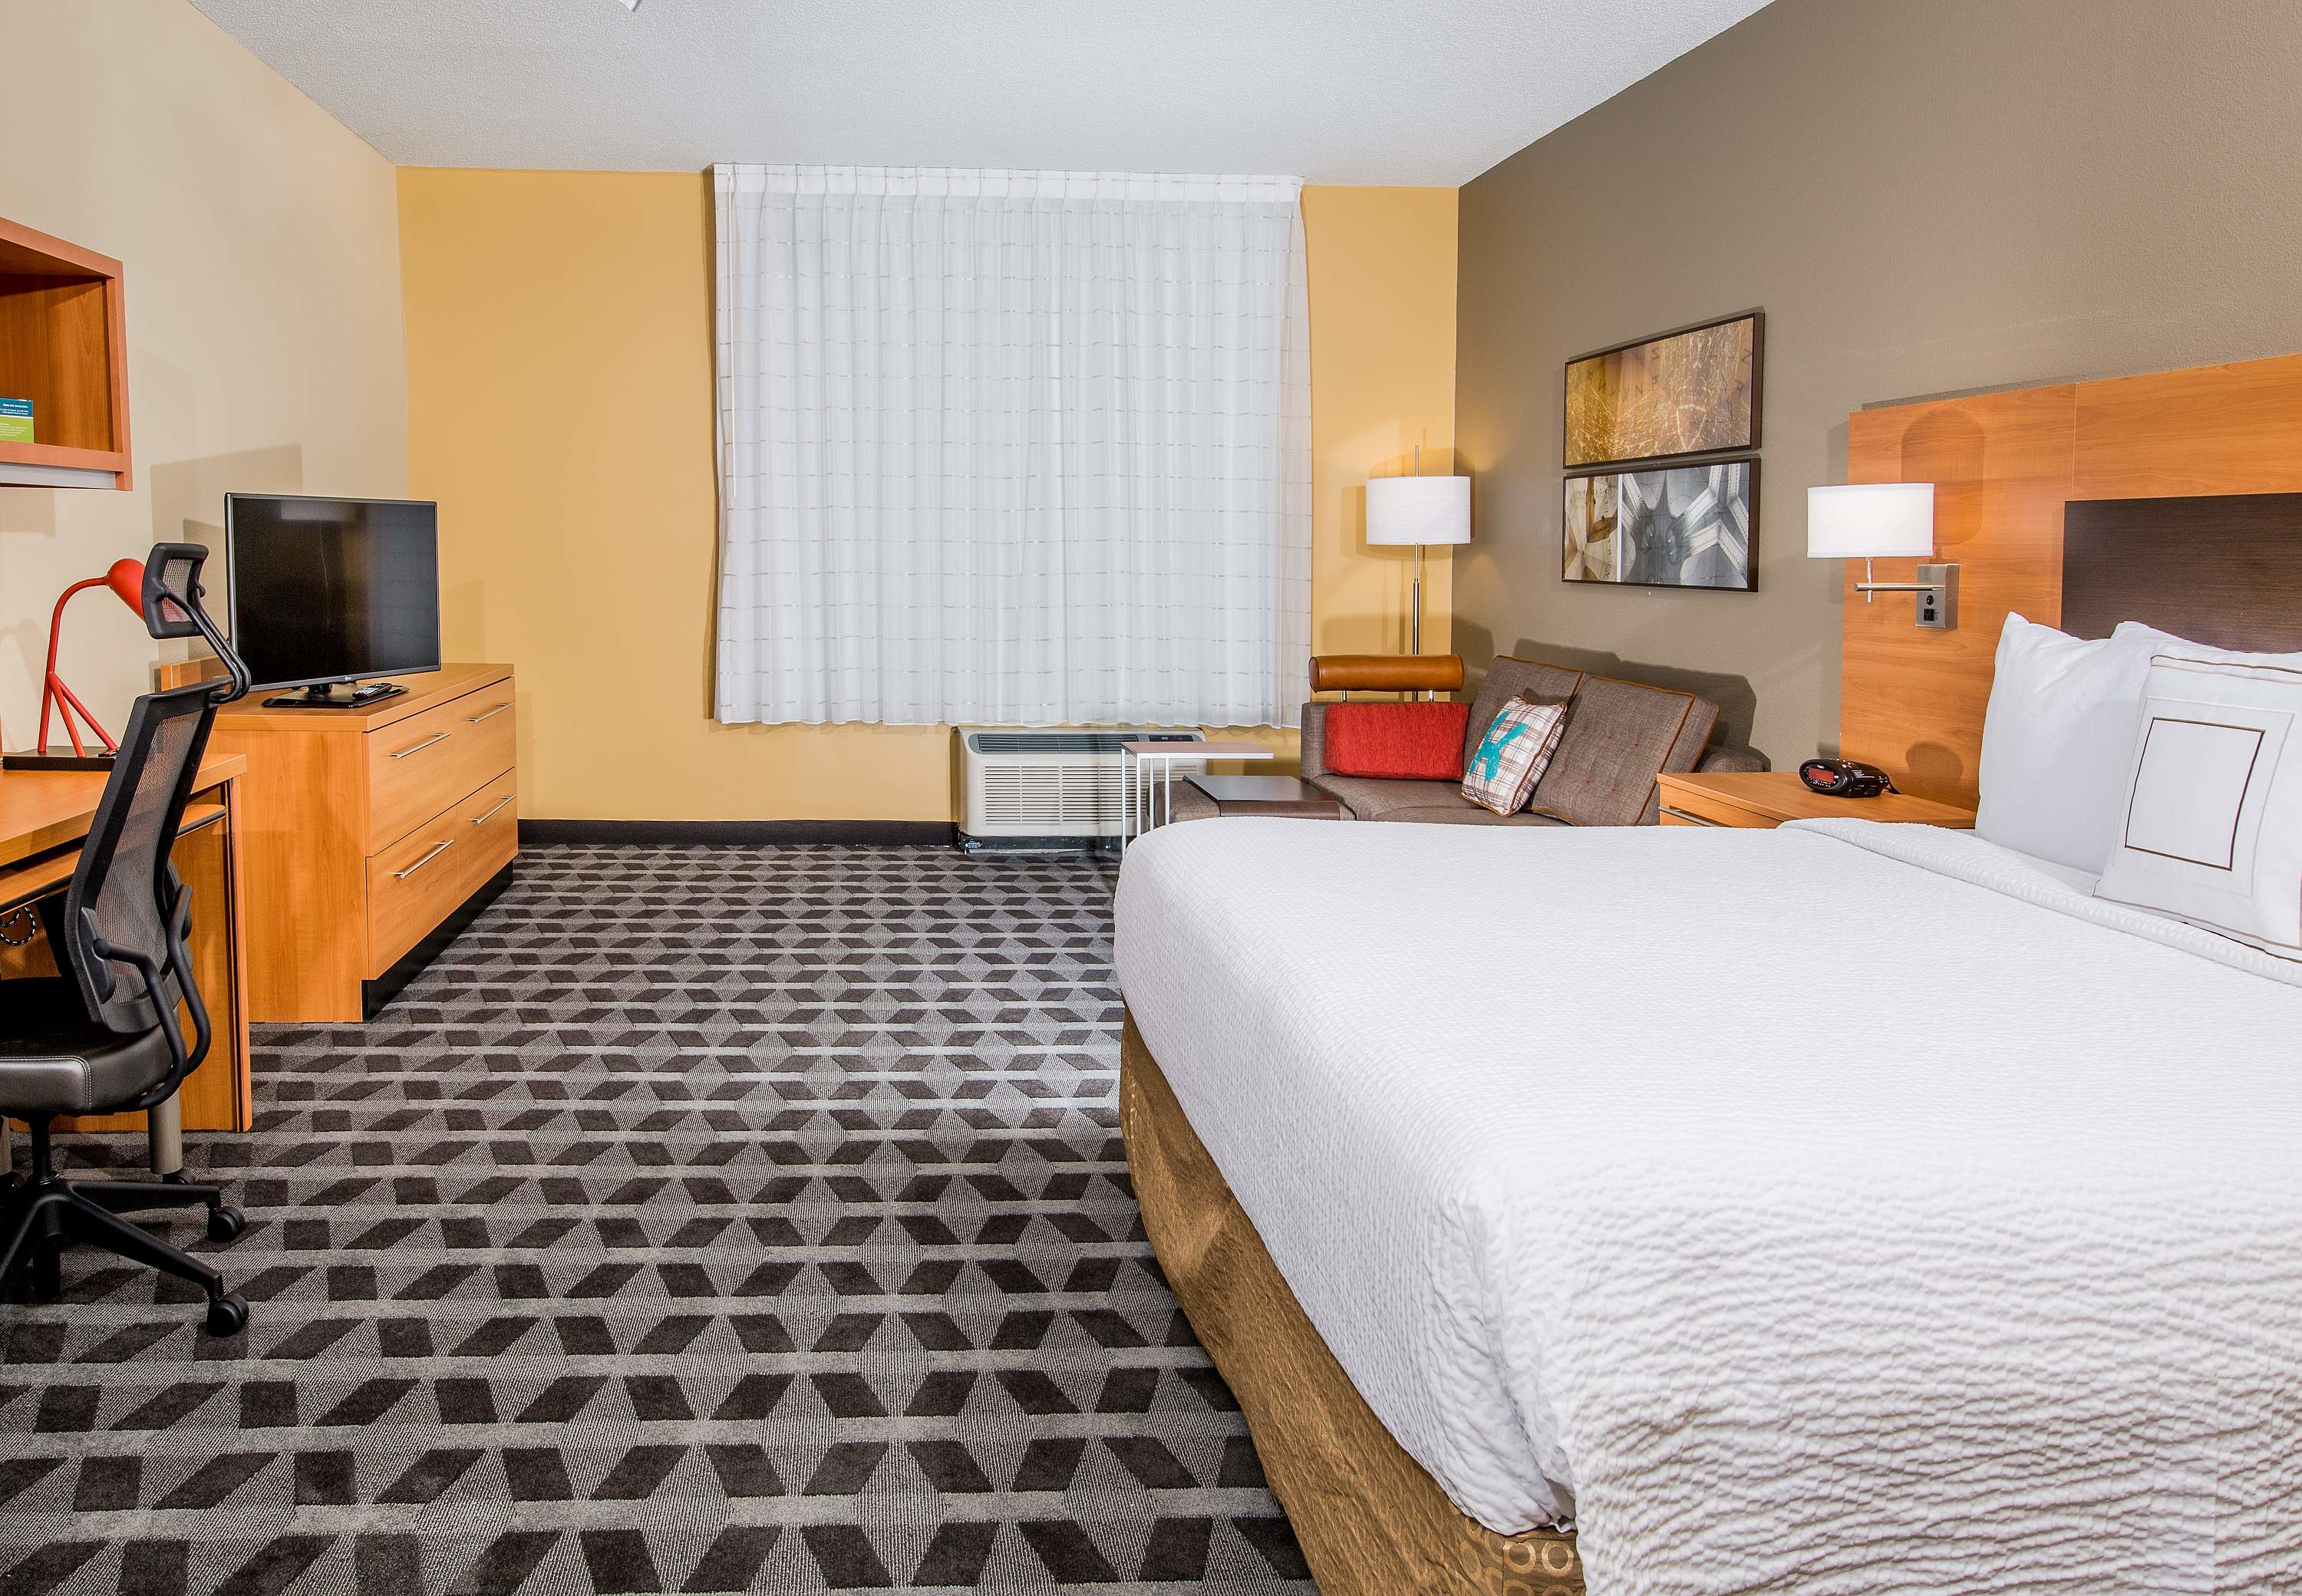 TownePlace Suites by Marriott Florence image 8